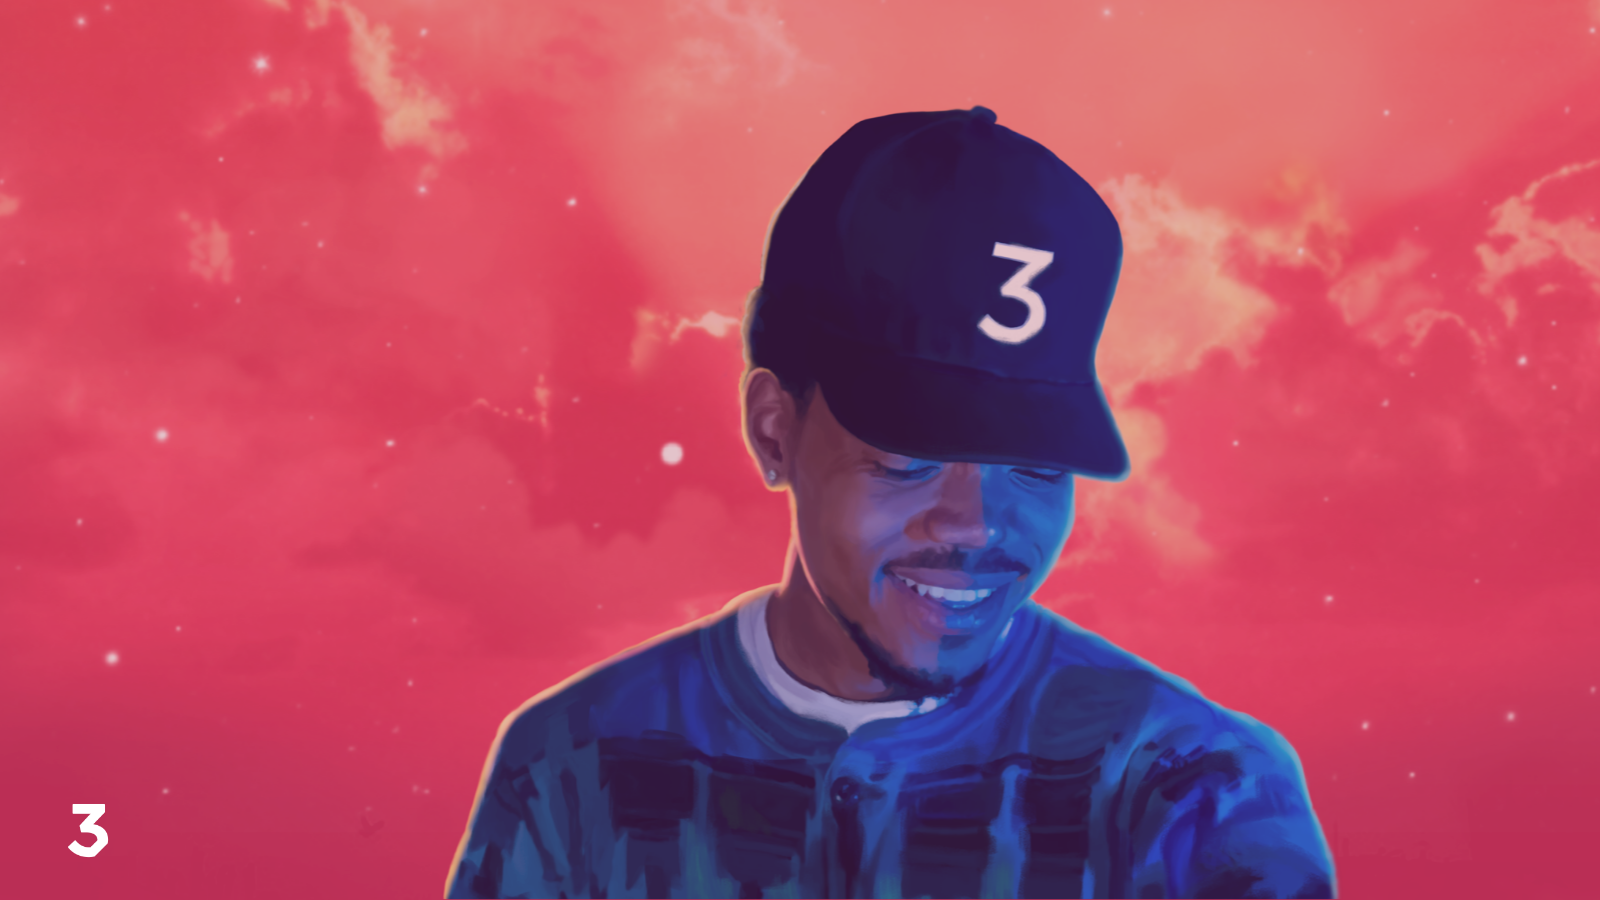 chance coloring book wallpaper - photo #2